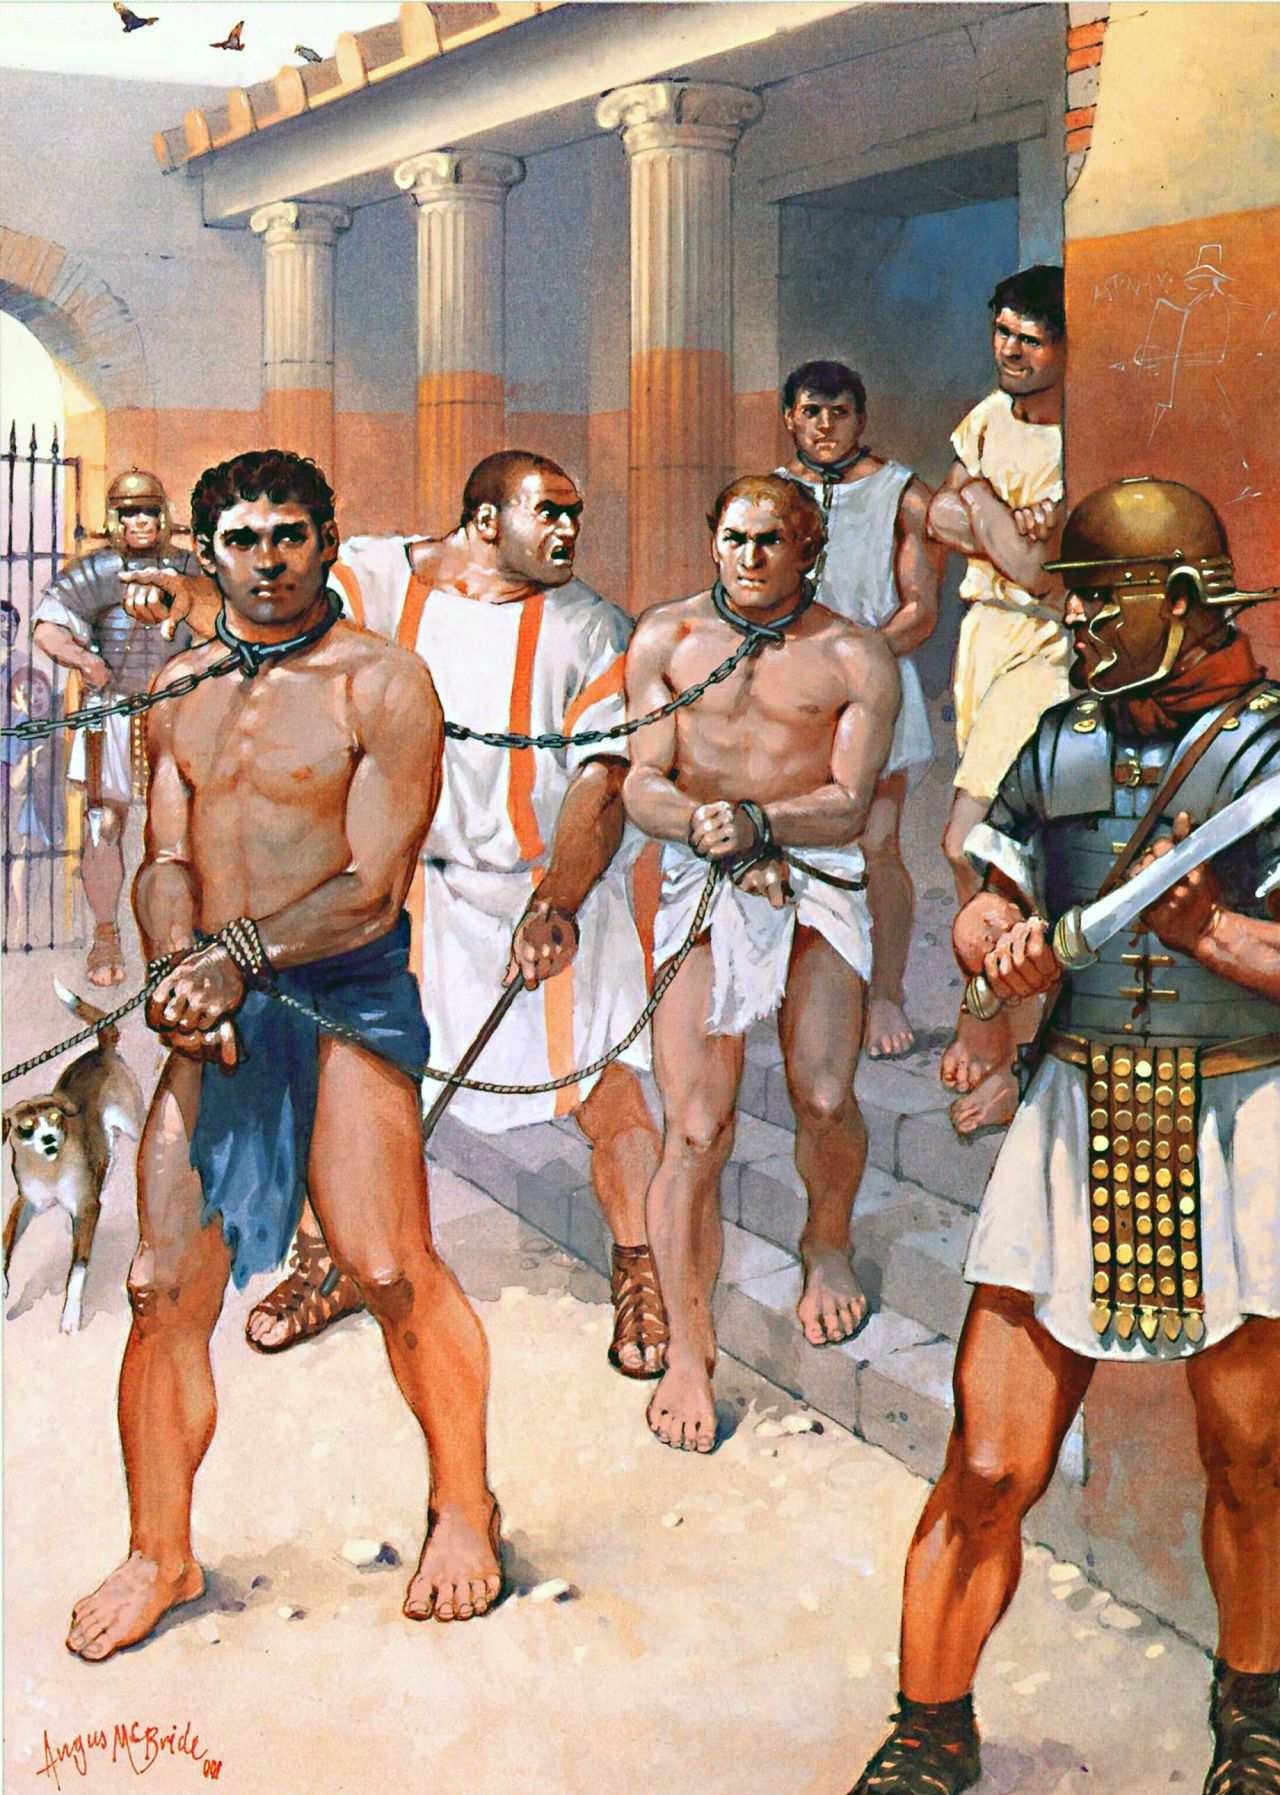 Slaves recruited for training as gladiators- by Angus McBride | Roman history, Roman empire, Ancient rome